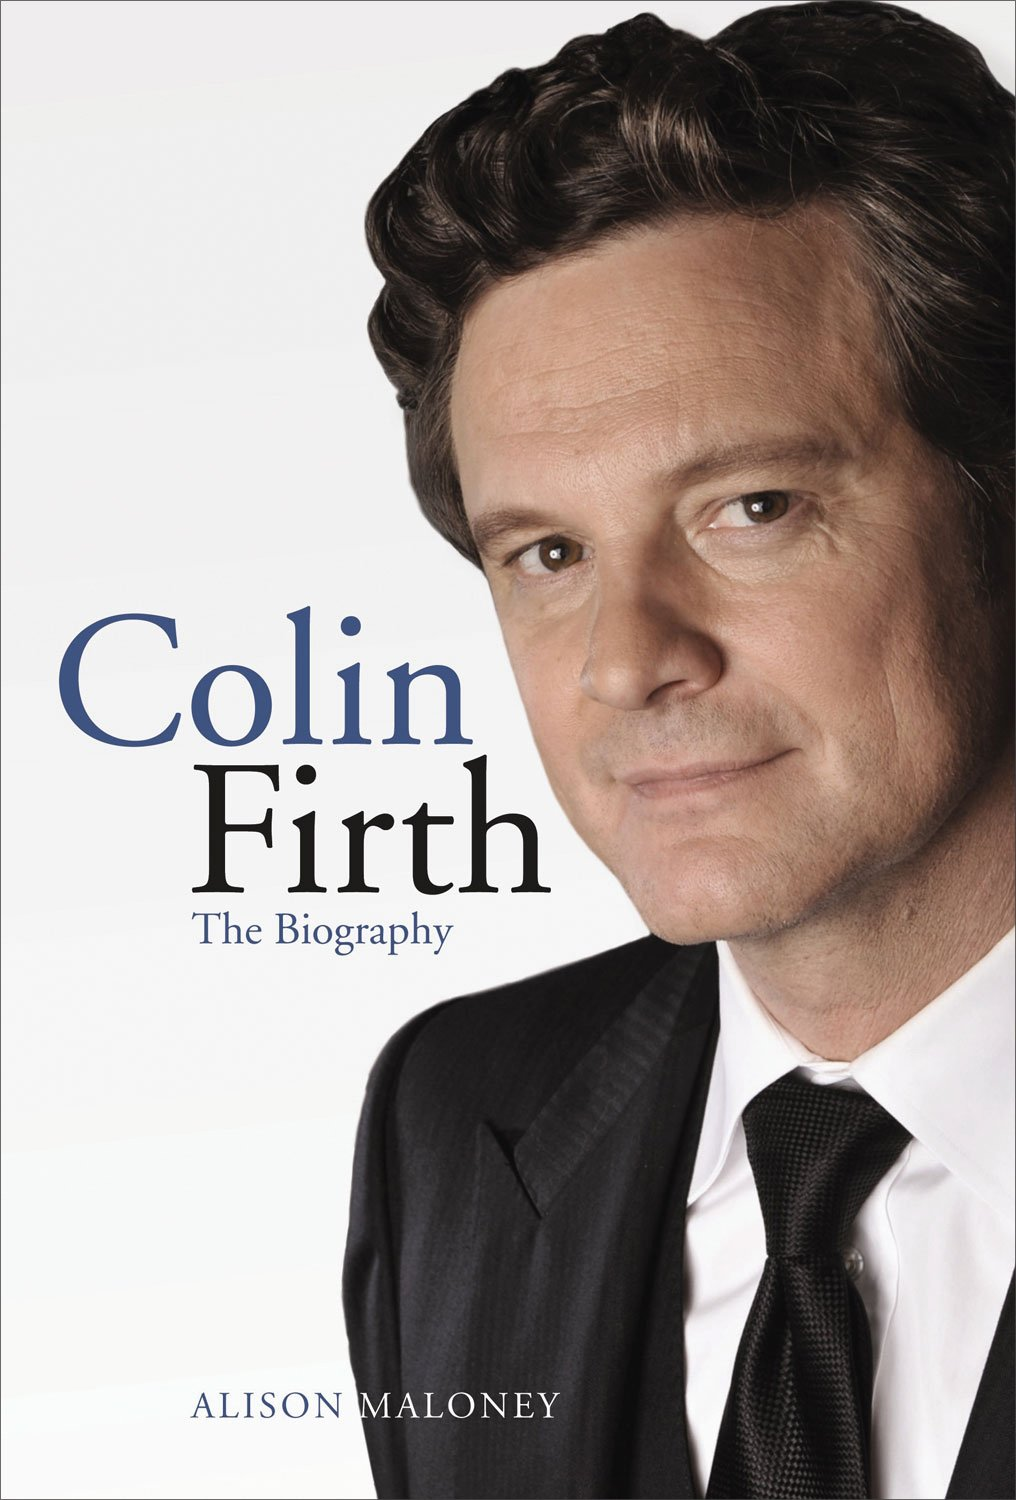 Colin firth the biography alison maloney 9781843177173 amazon colin firth the biography alison maloney 9781843177173 amazon books geenschuldenfo Images